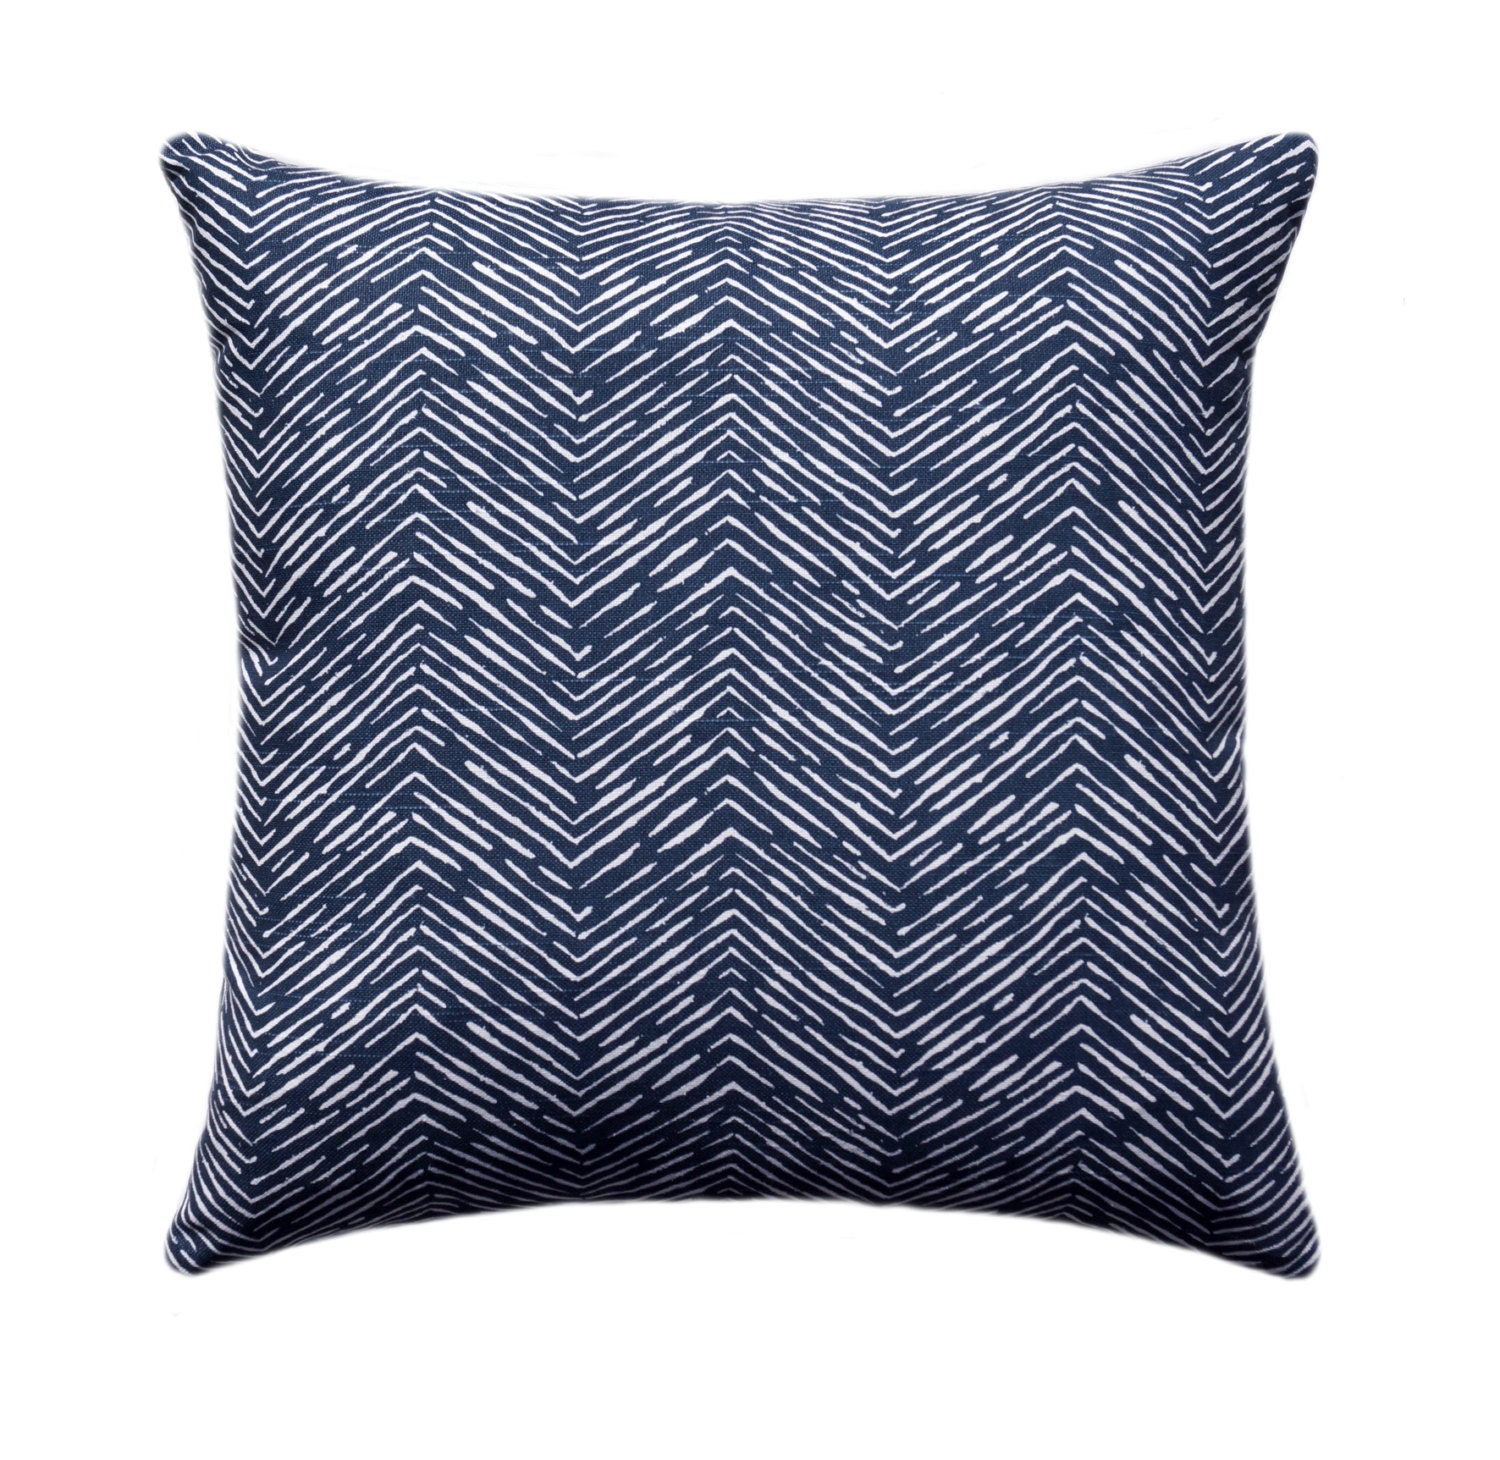 Navy Blue Herringbone Decorative Pillow Cover Navy Throw